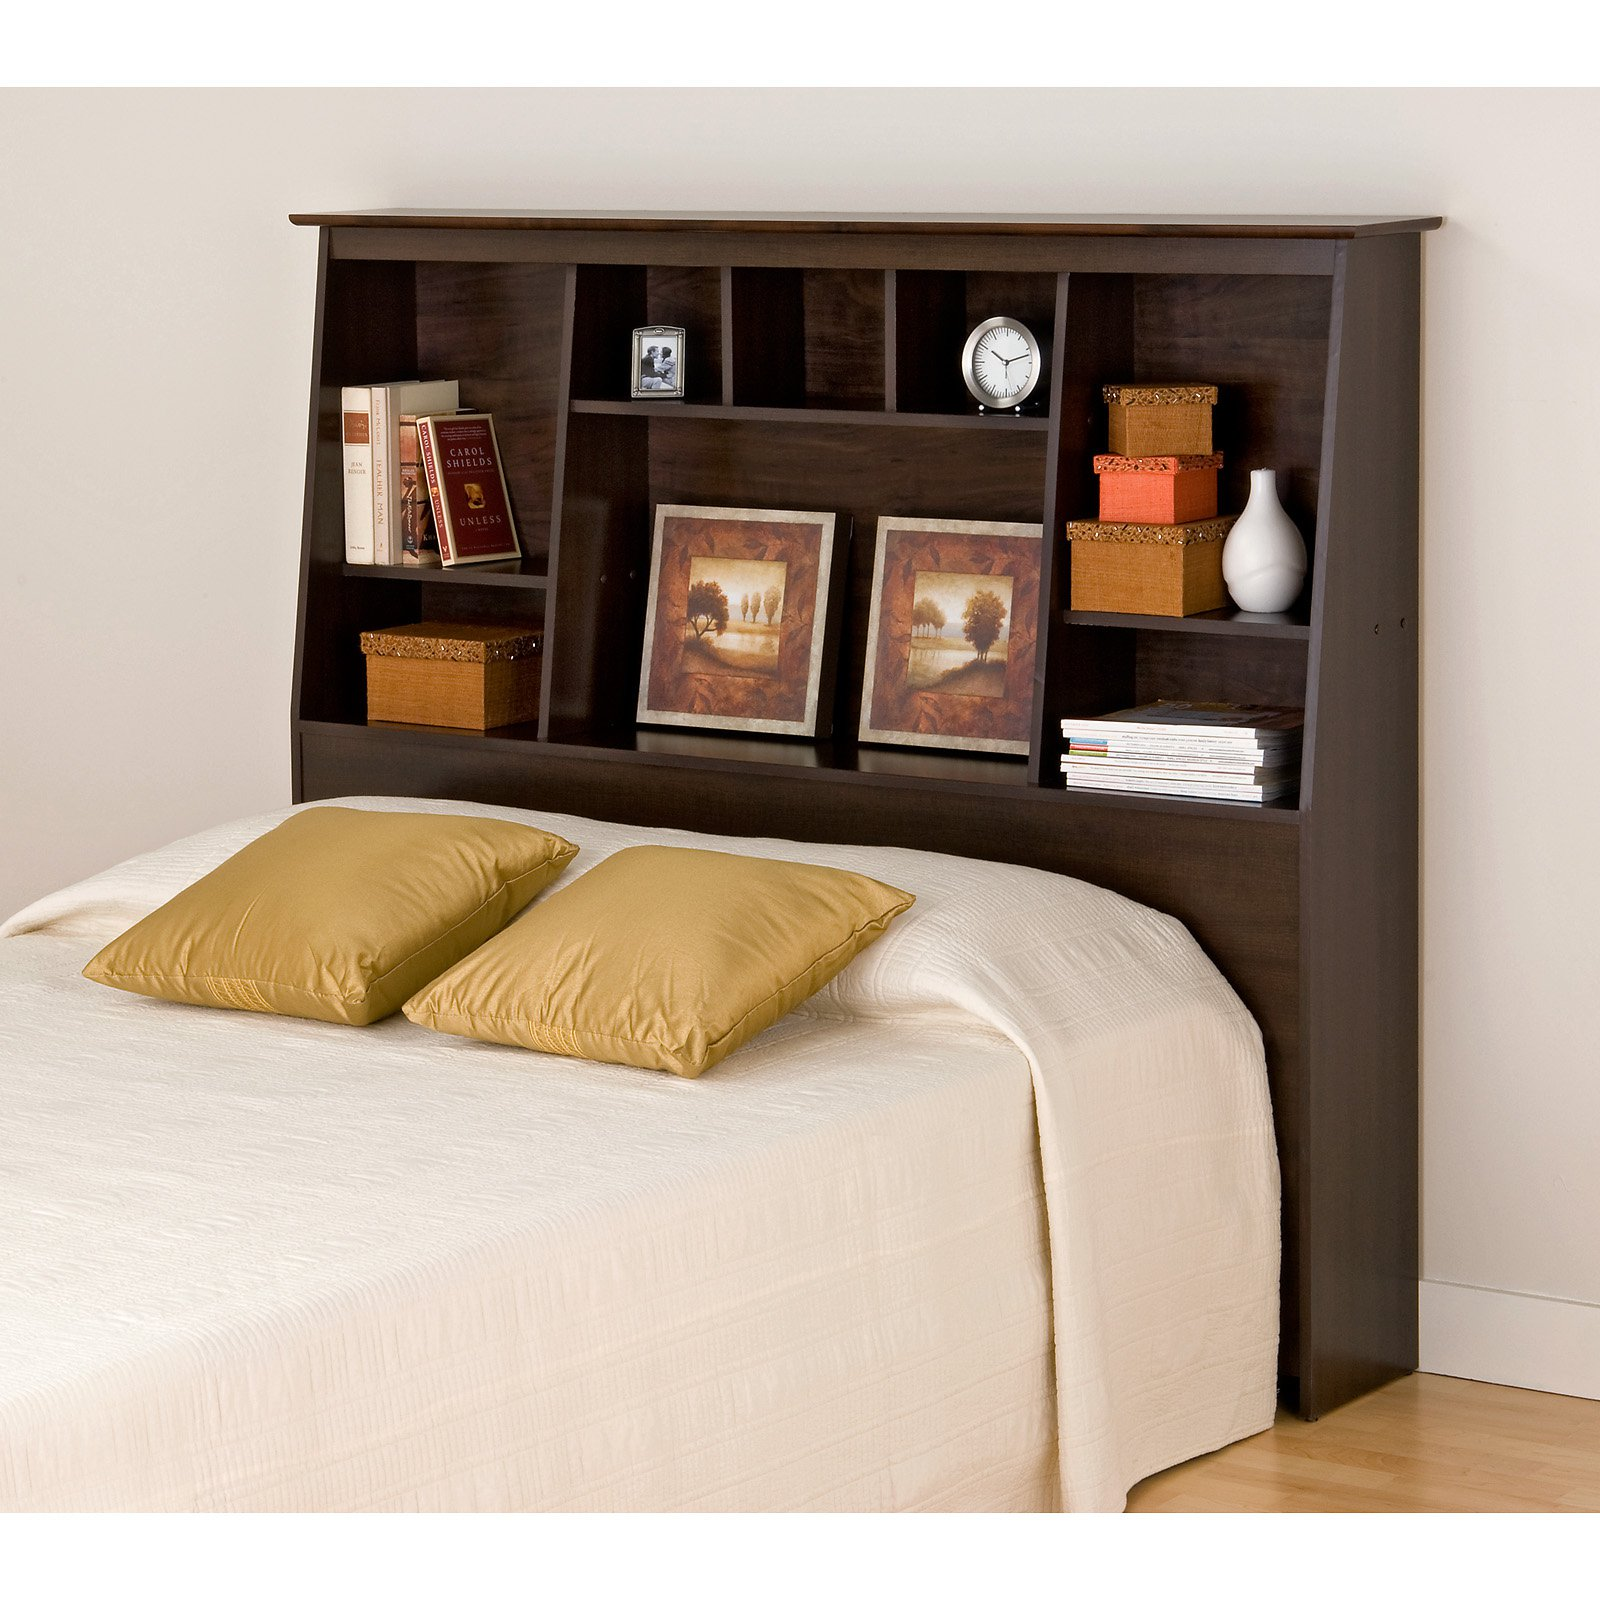 Prepac Sonoma Tall Double/Queen Storage Headboard, Multiple Colors